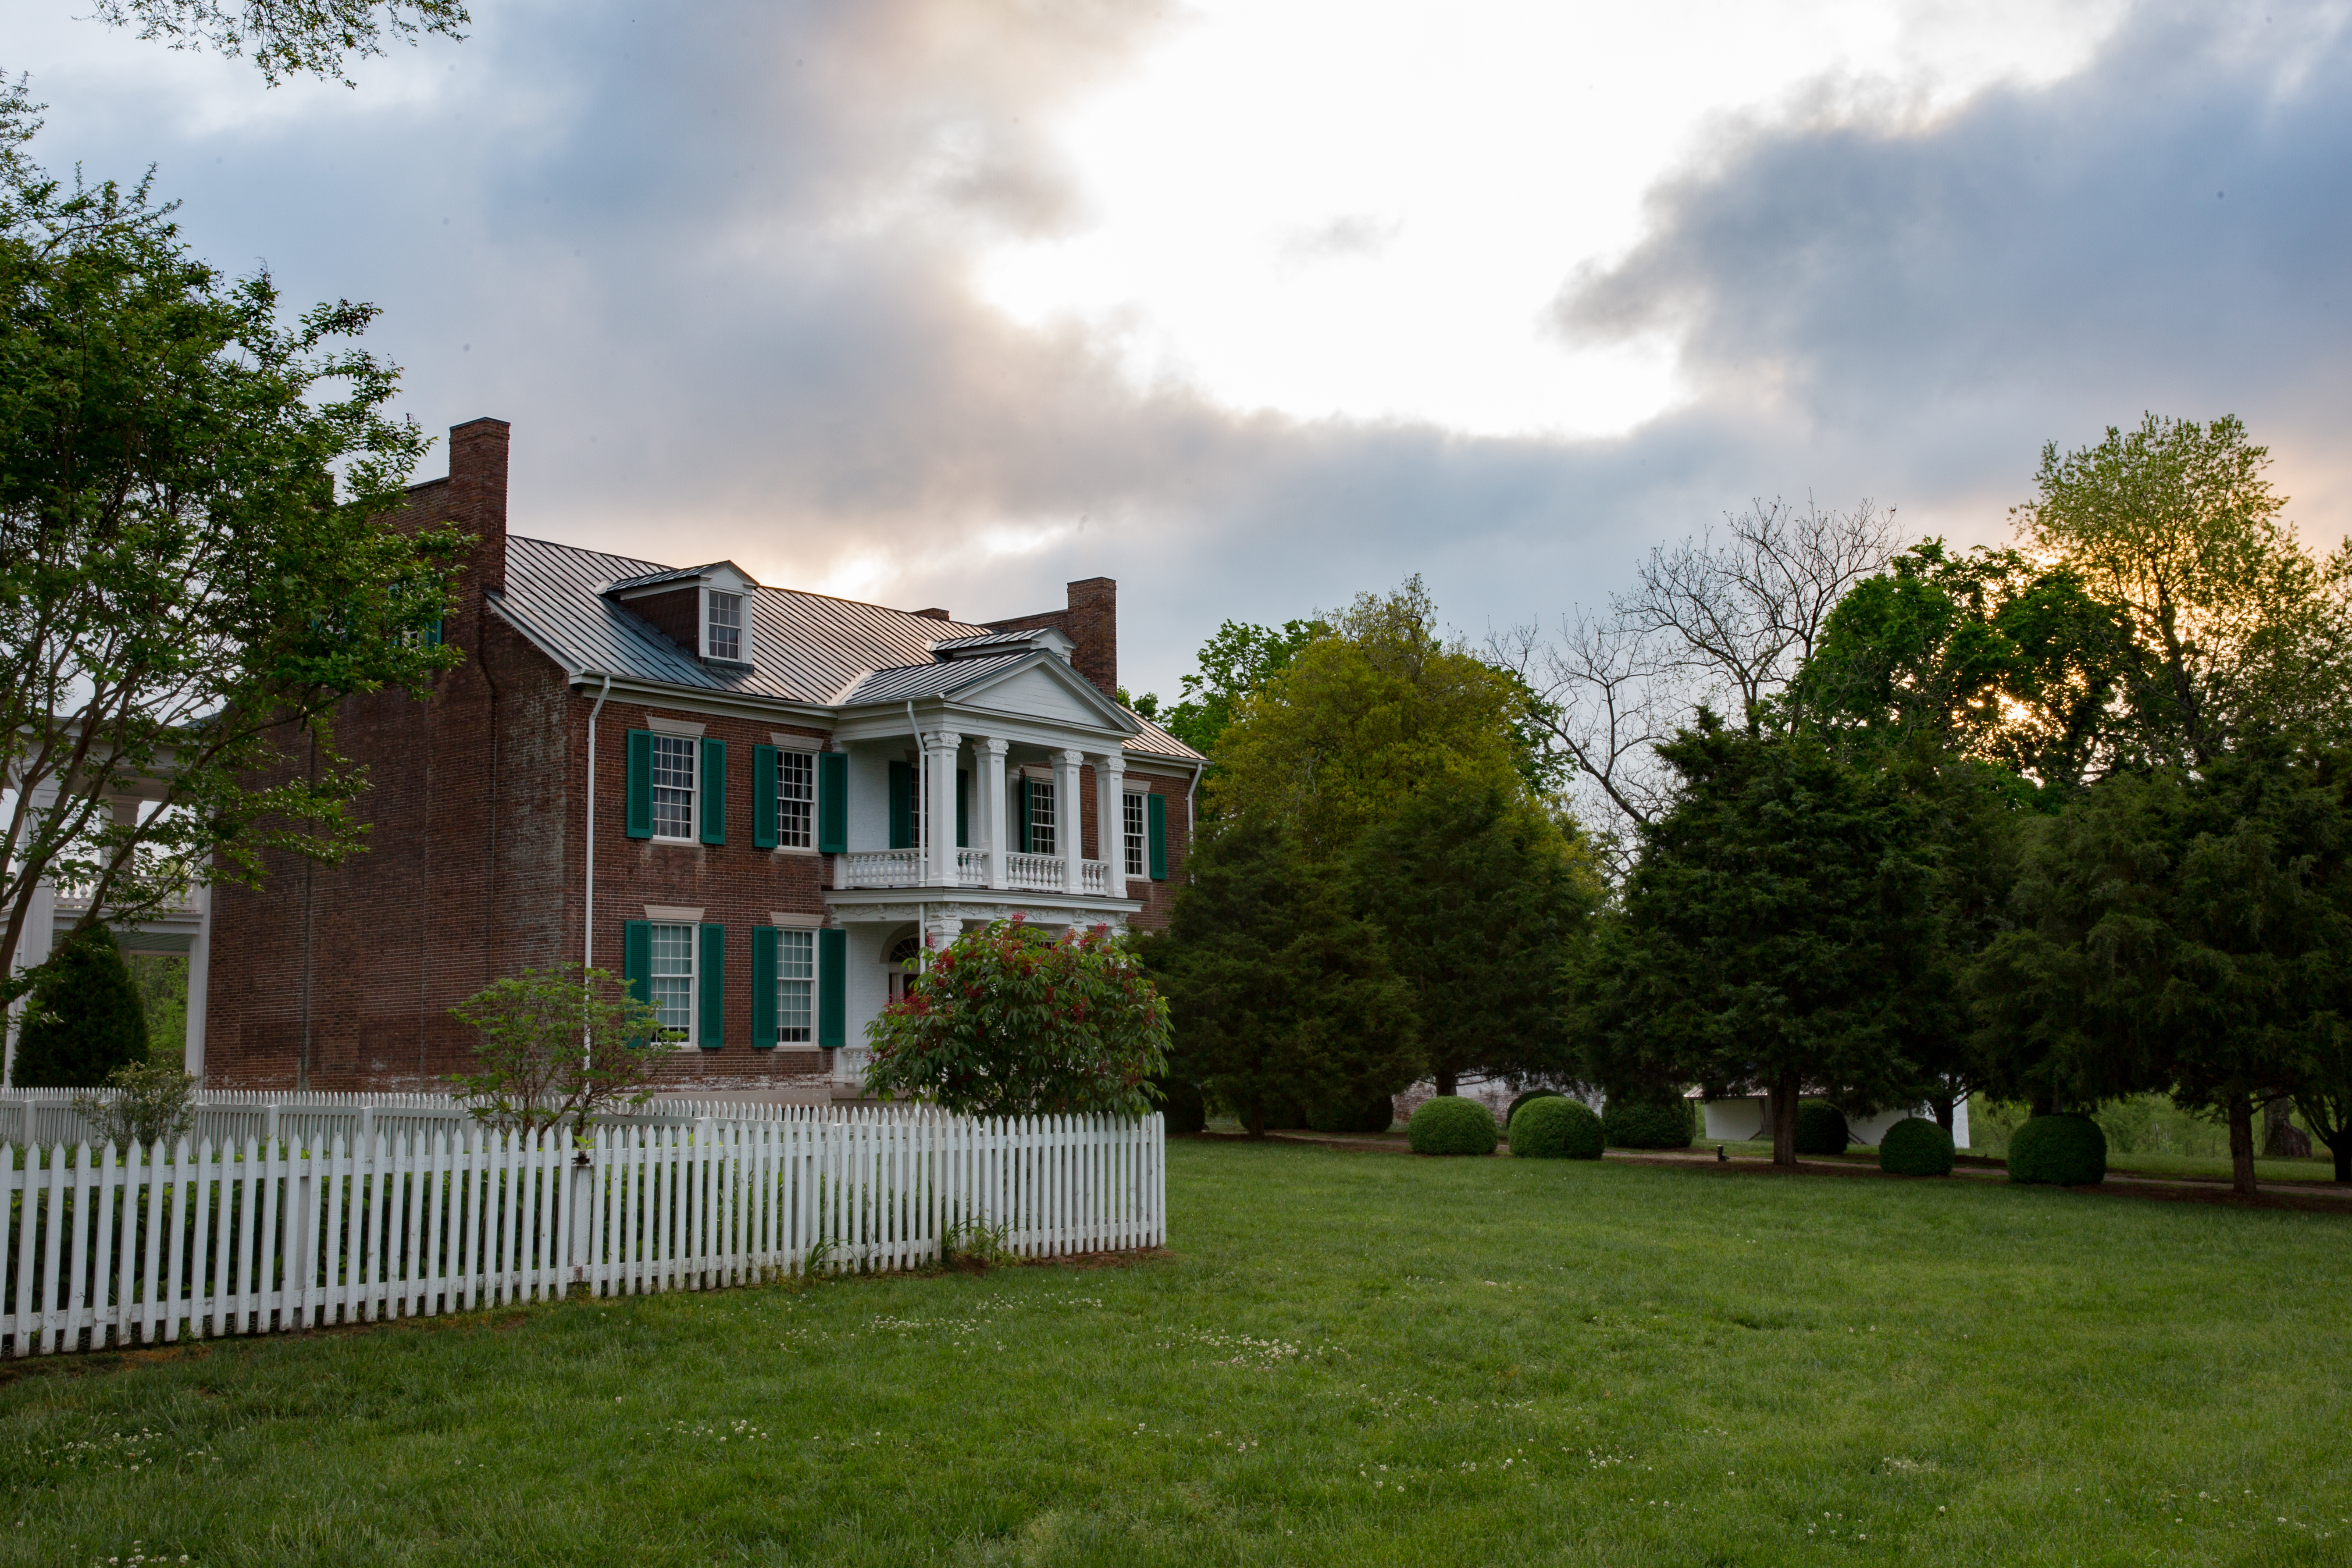 Carnton Plantation in Franklin, Tennessee